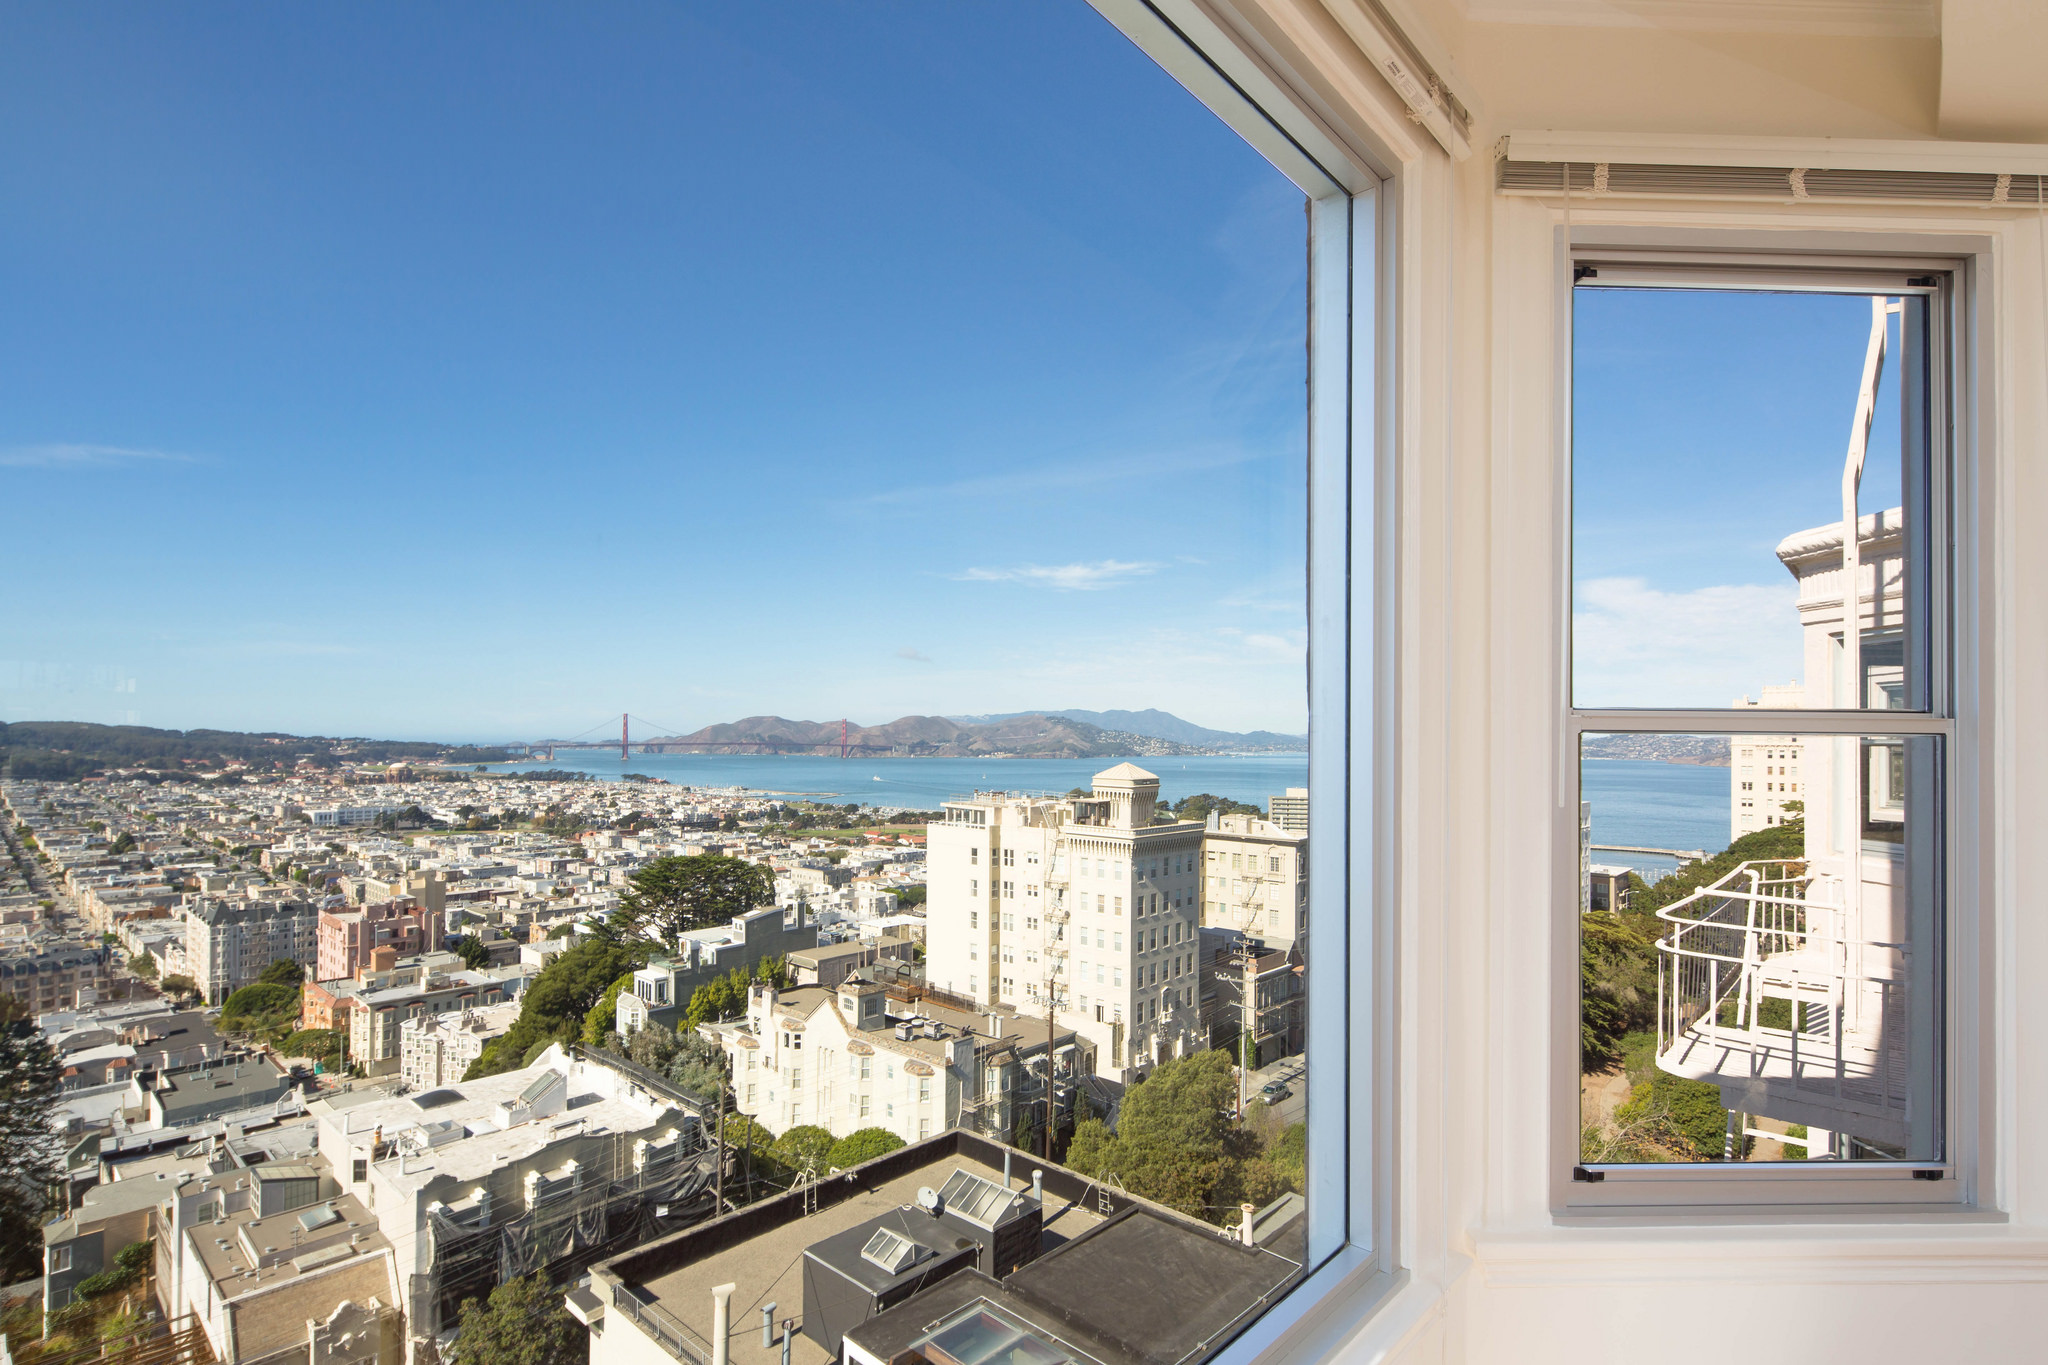 Russian Hill view west